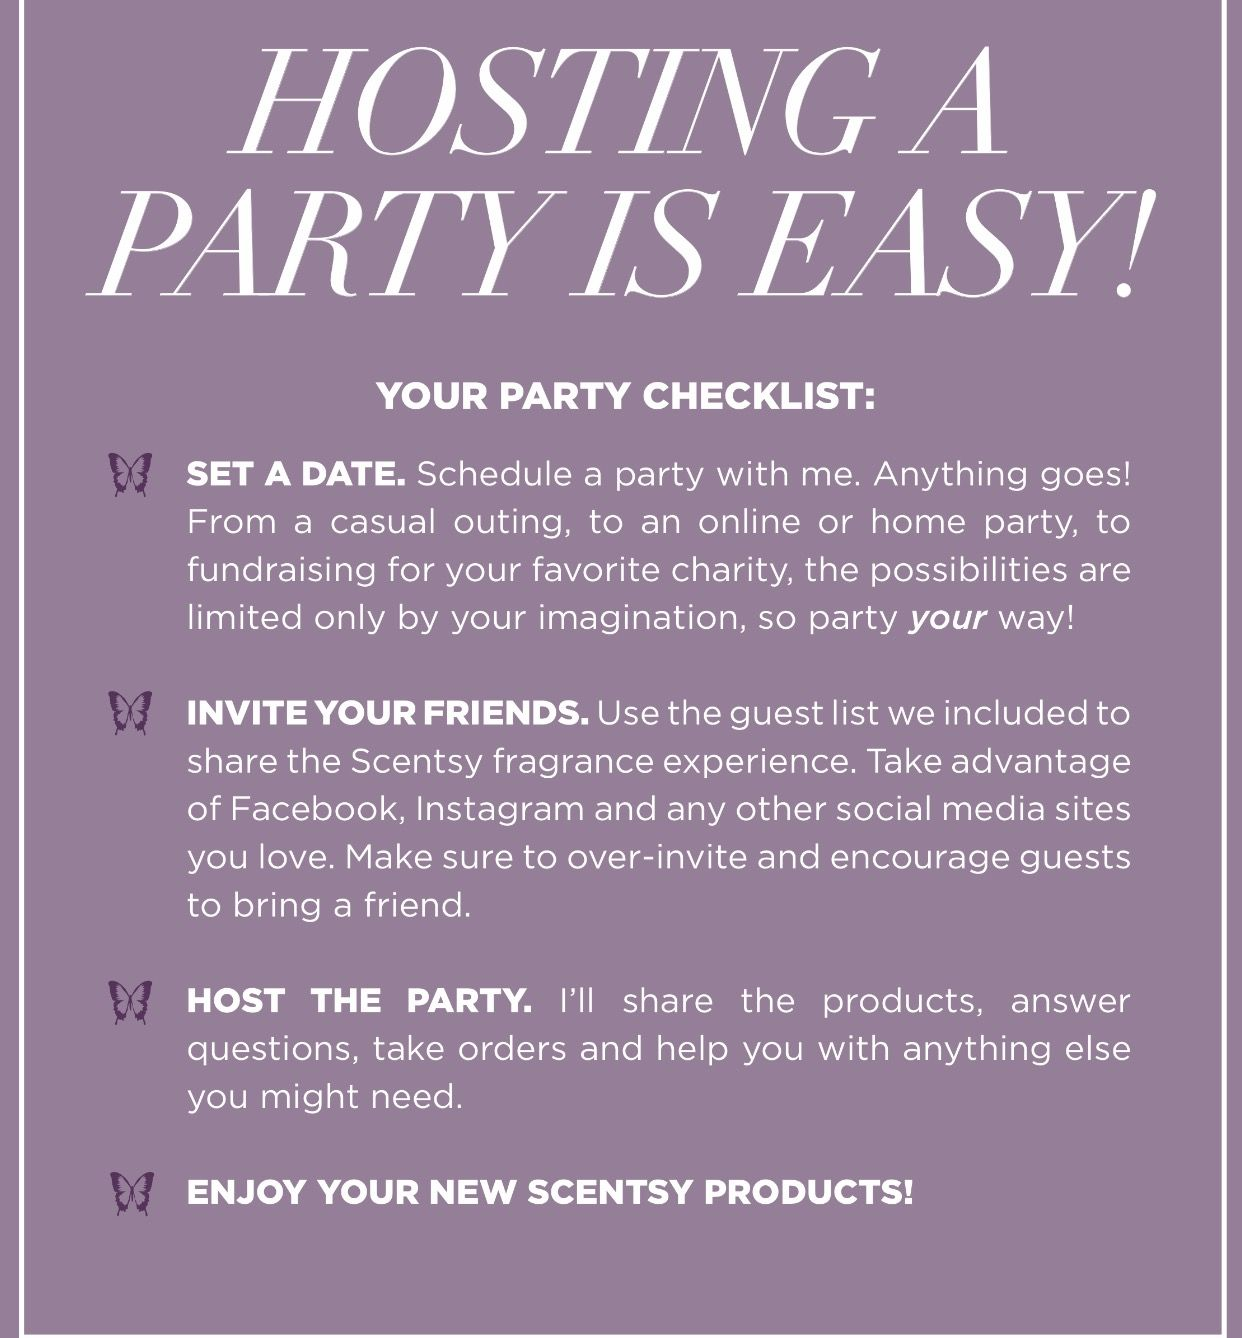 Hosting is Easy!  Ask me how?